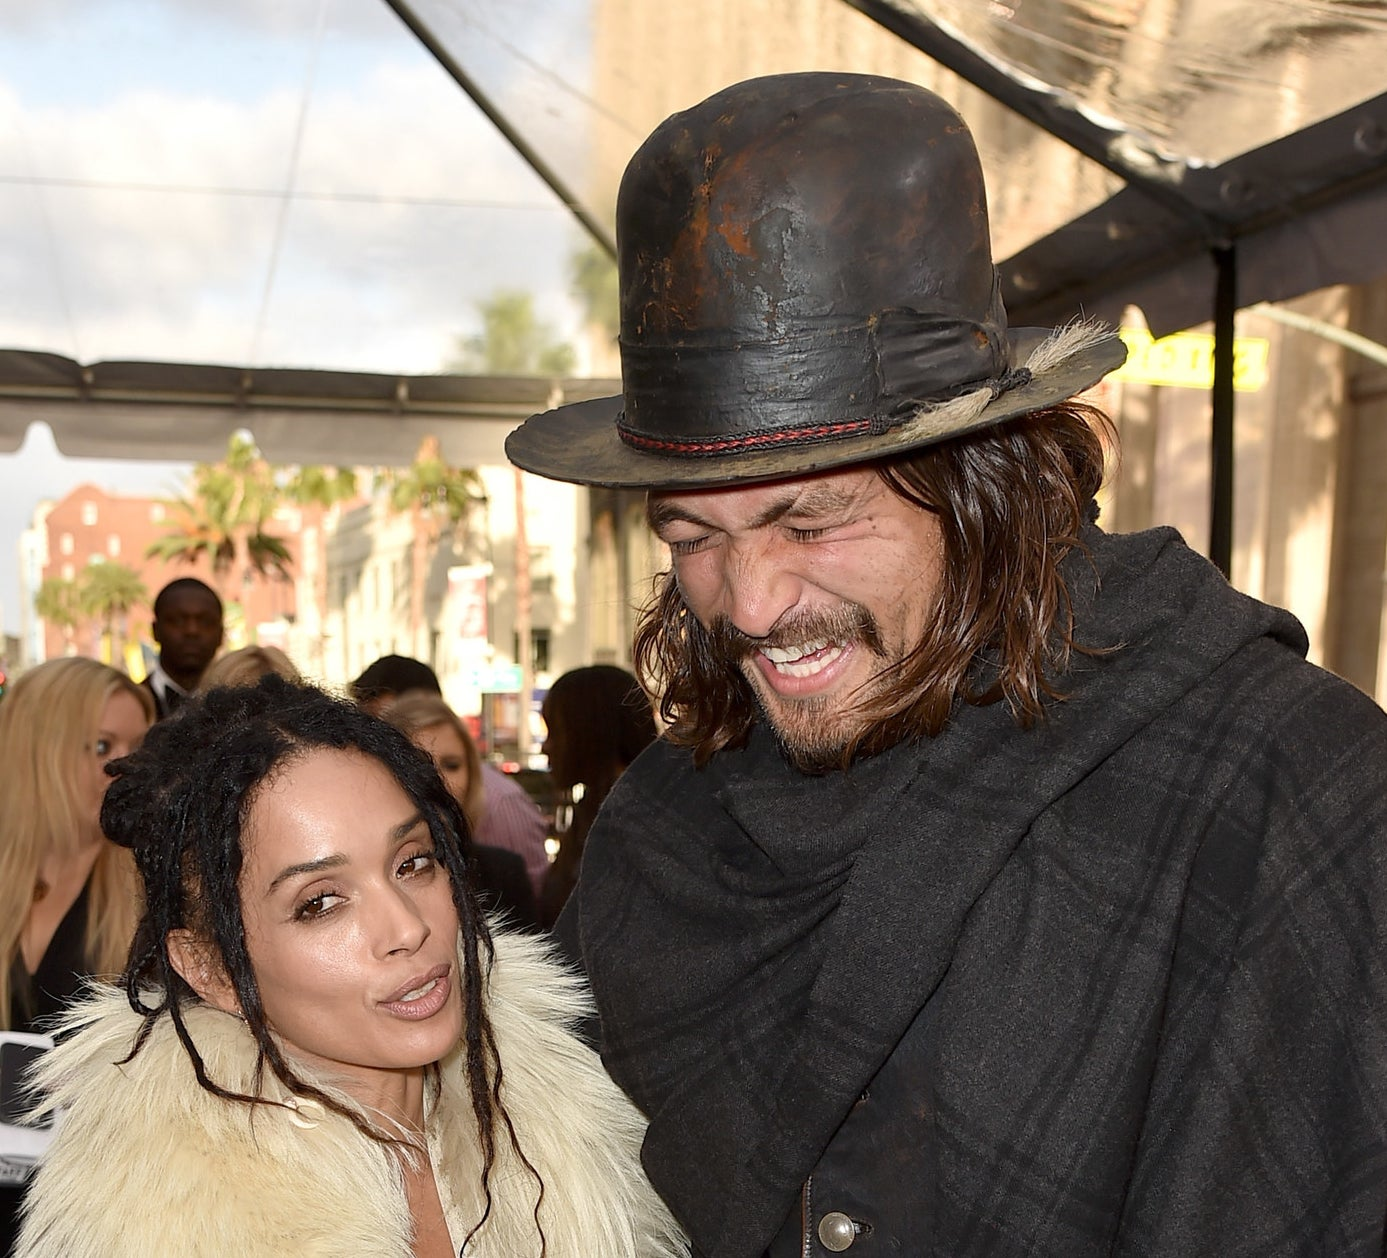 Jason Momoa Hat: Jason Momoa Laughing Is Truly A Delight To Behold